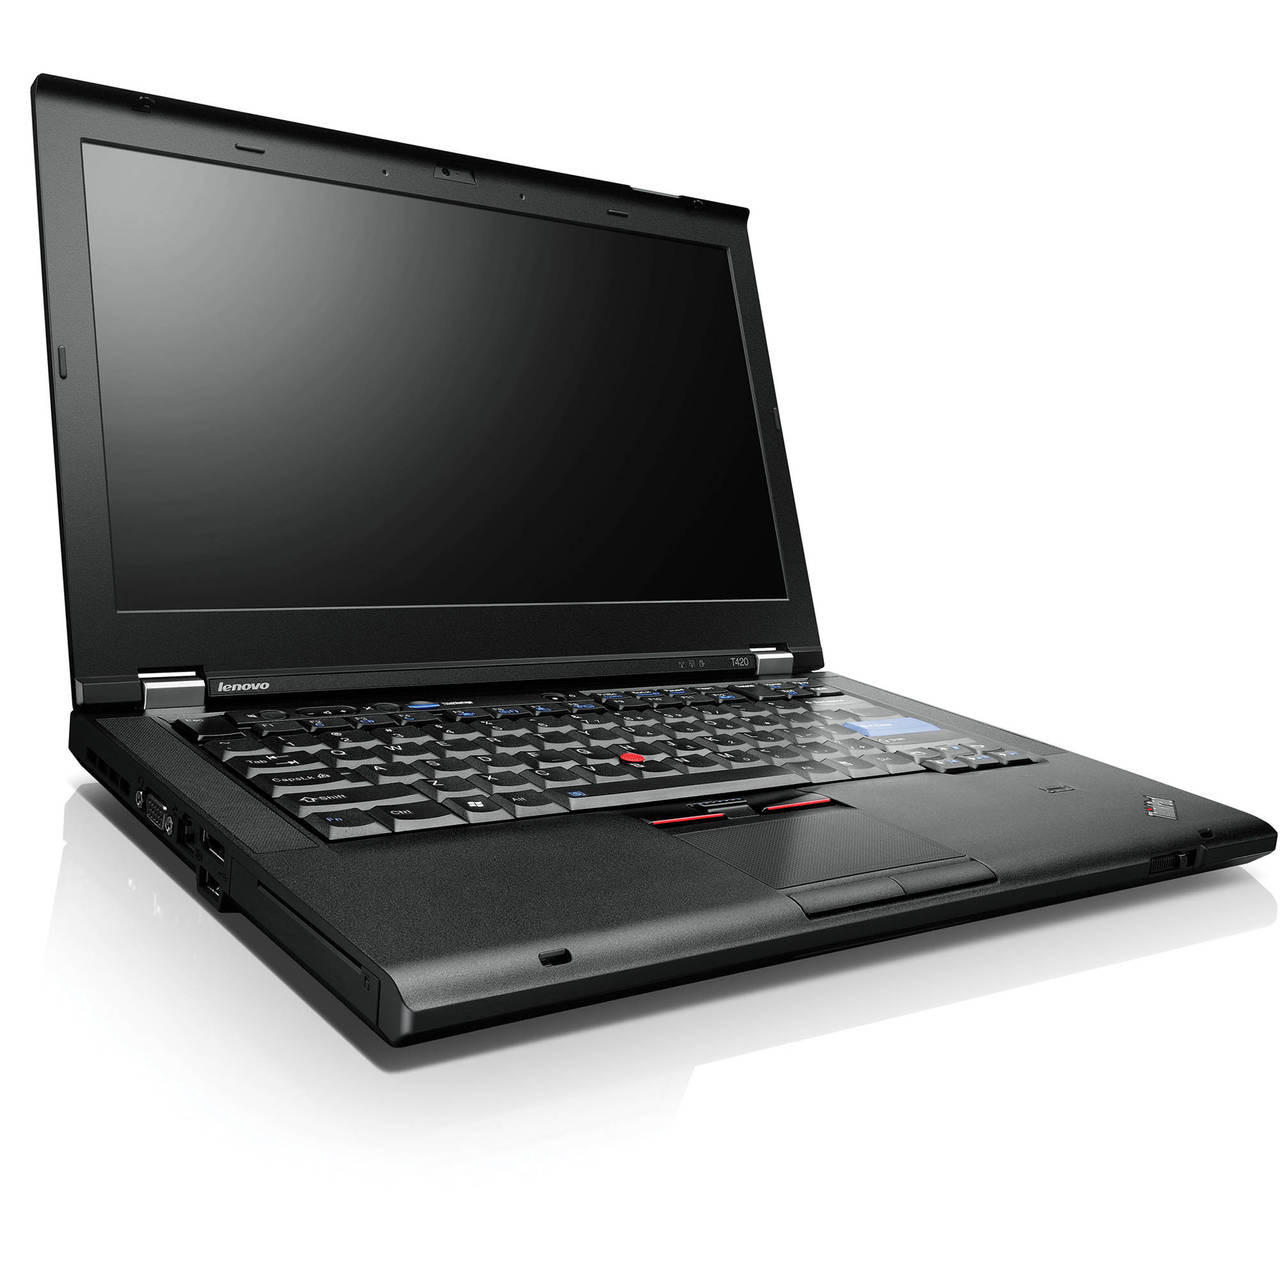 Lenovo ThinkPad T420 - Core i7 (Configure to Order) front left side ...